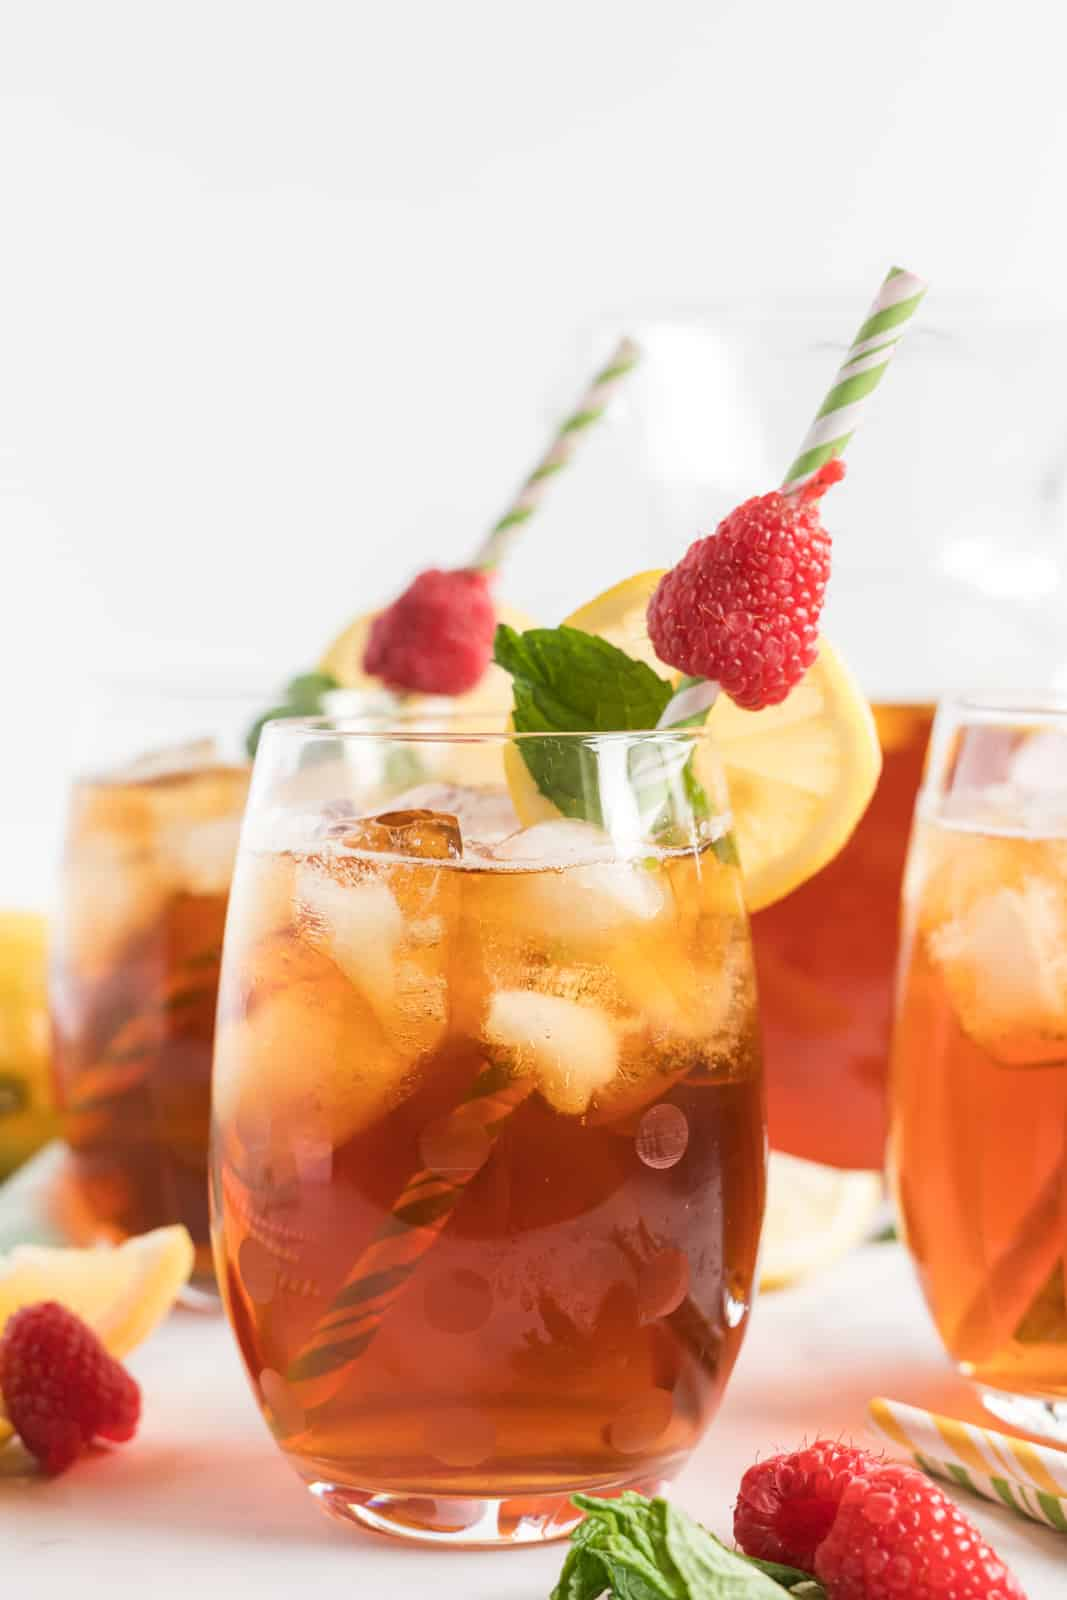 Tea in serving glasses garnished with mint leaves, raspberries and lemon